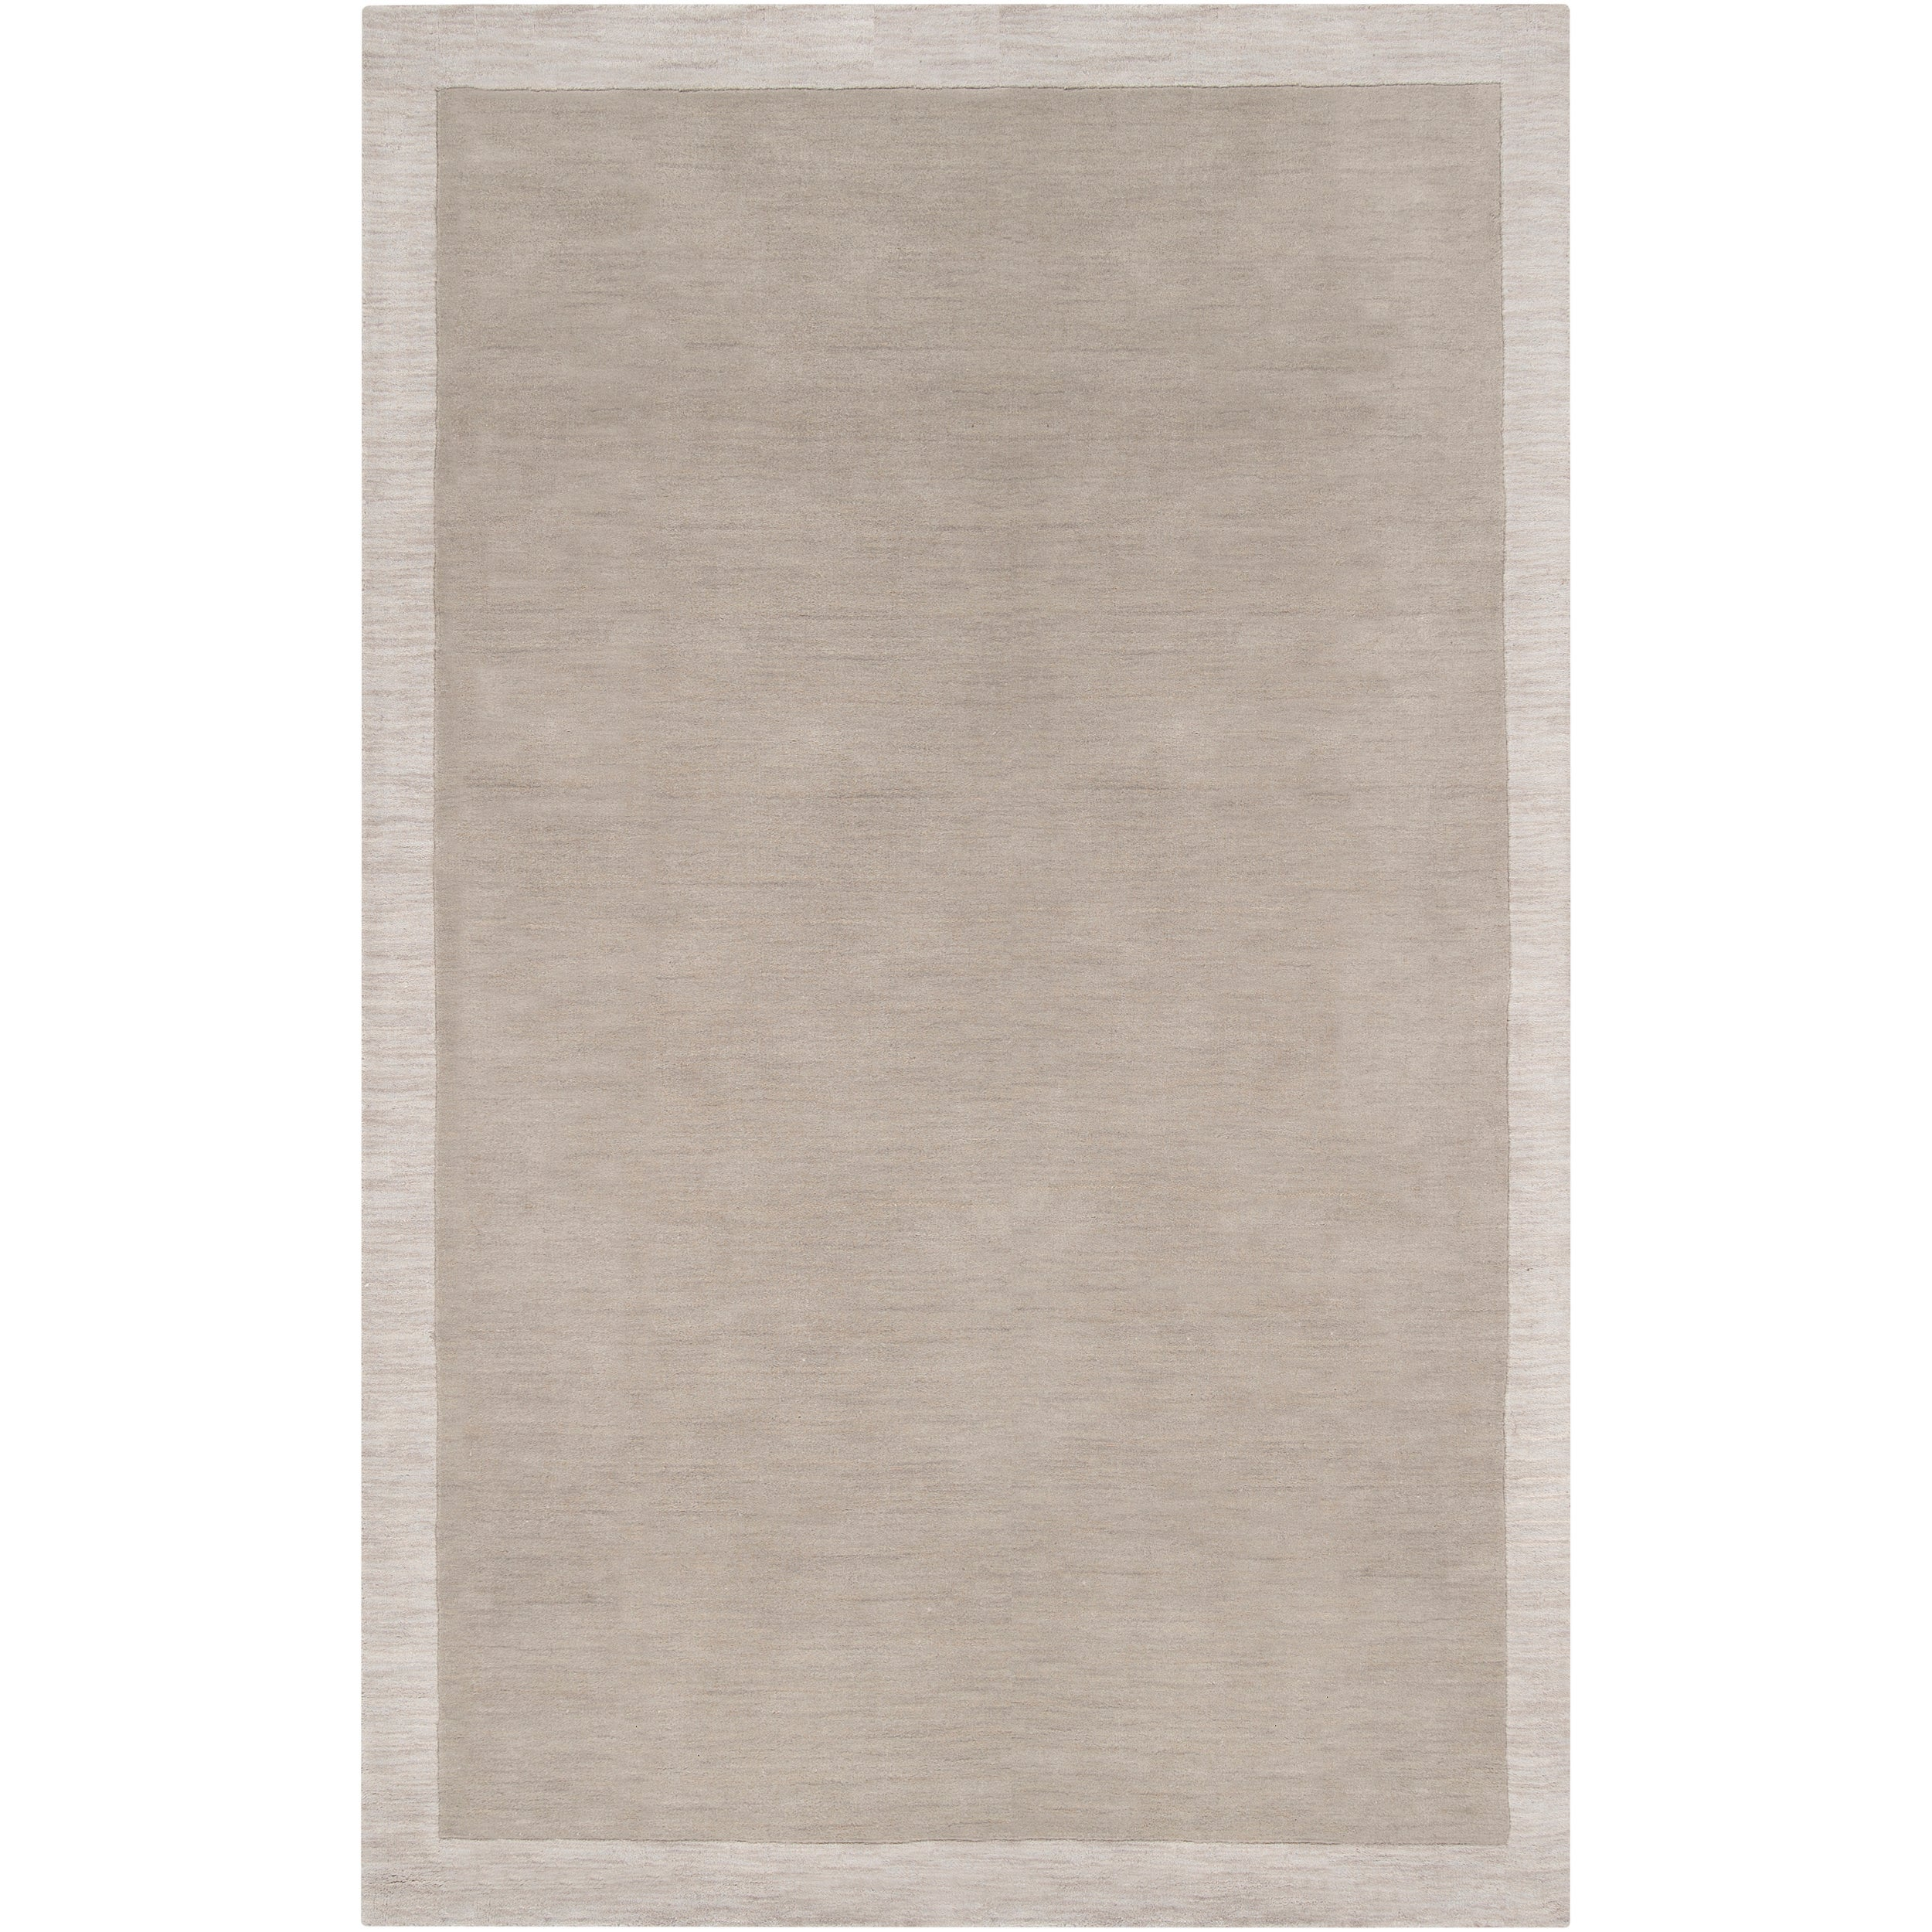 "Loomed Gray Madison Square Contemporary Wool Rug (5' x 7'6"")"